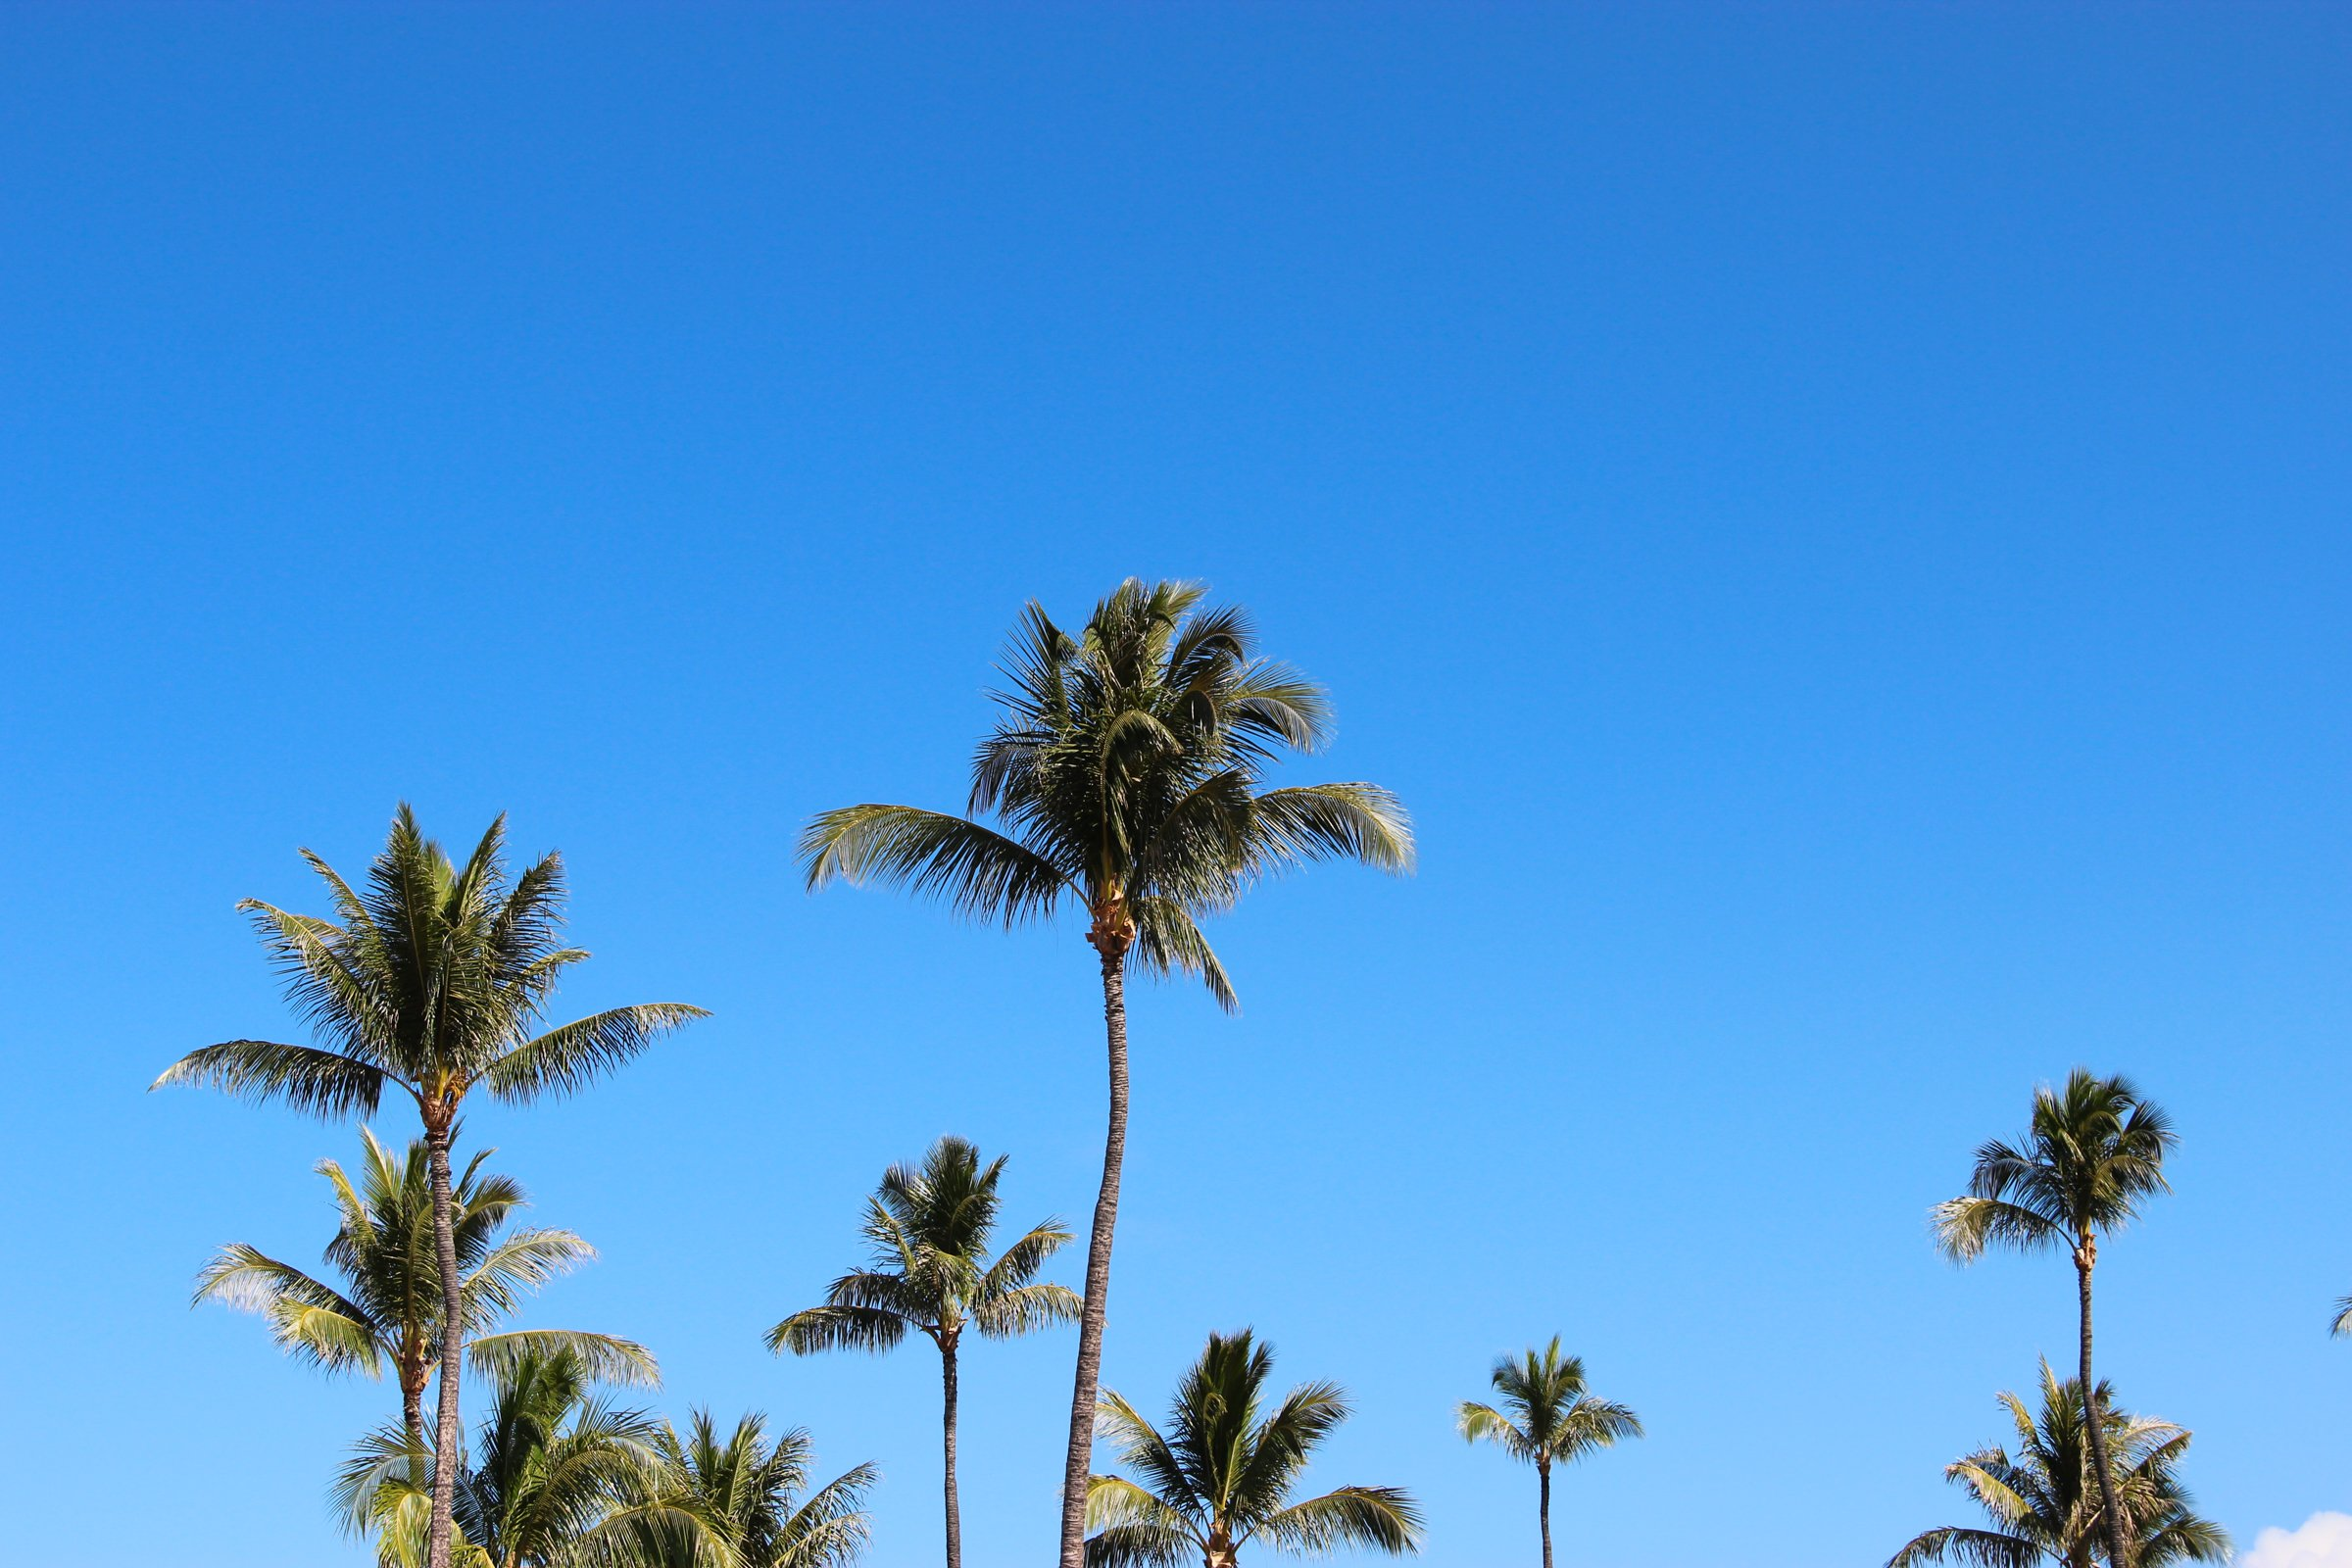 free stock photo of tops of palm trees on clear blue sky